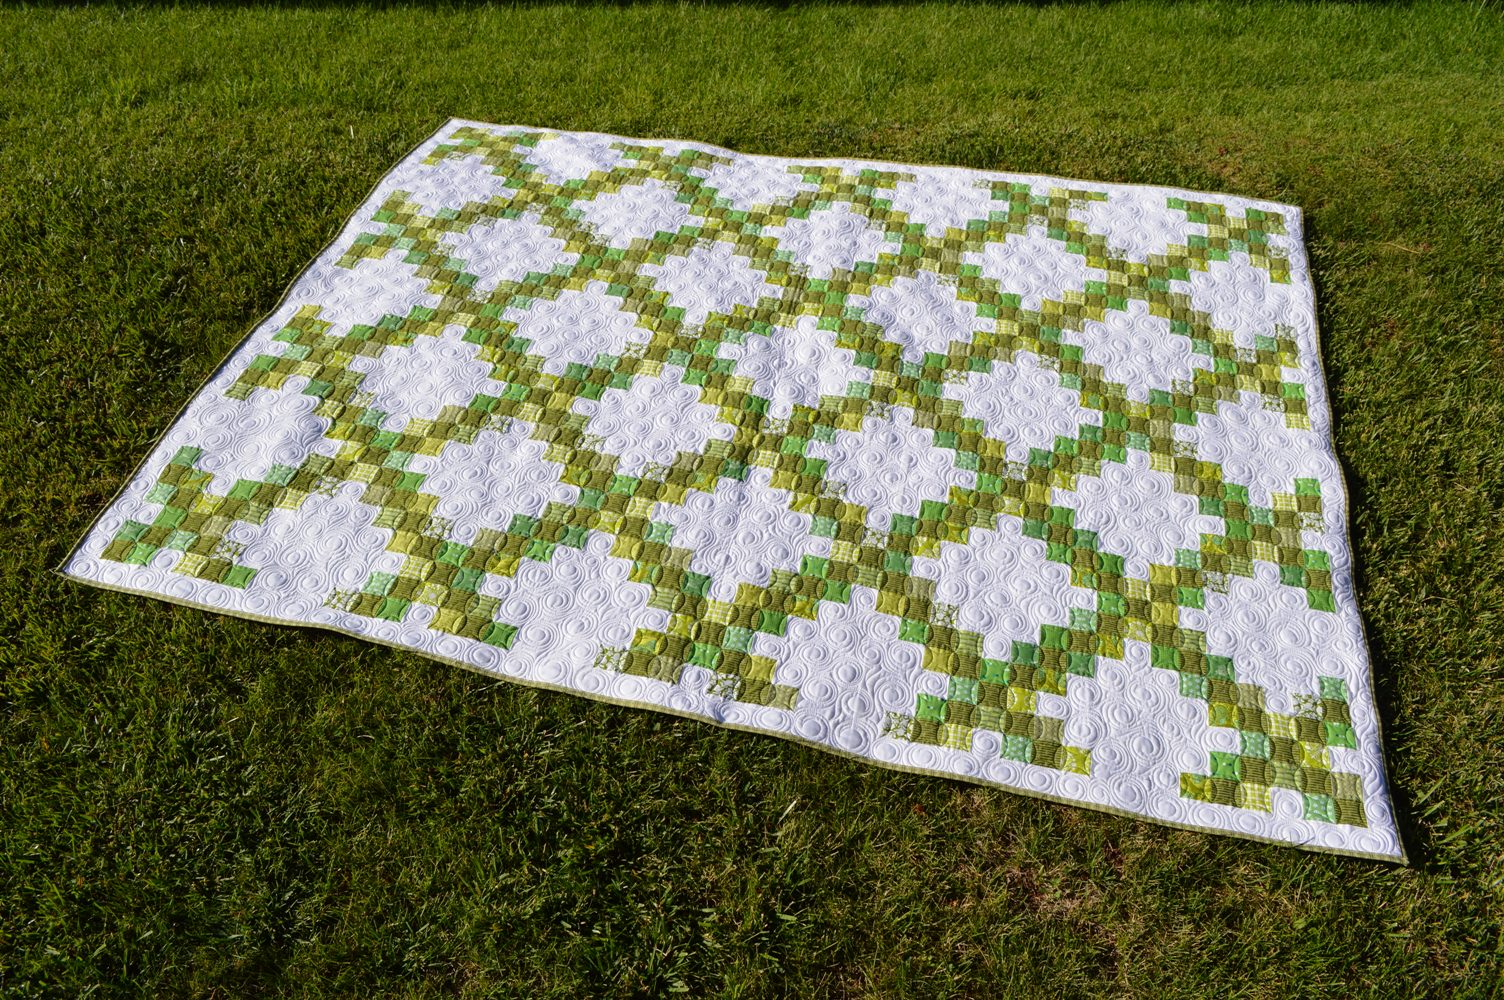 energy earth gardens think sew category i greengardens quilt green